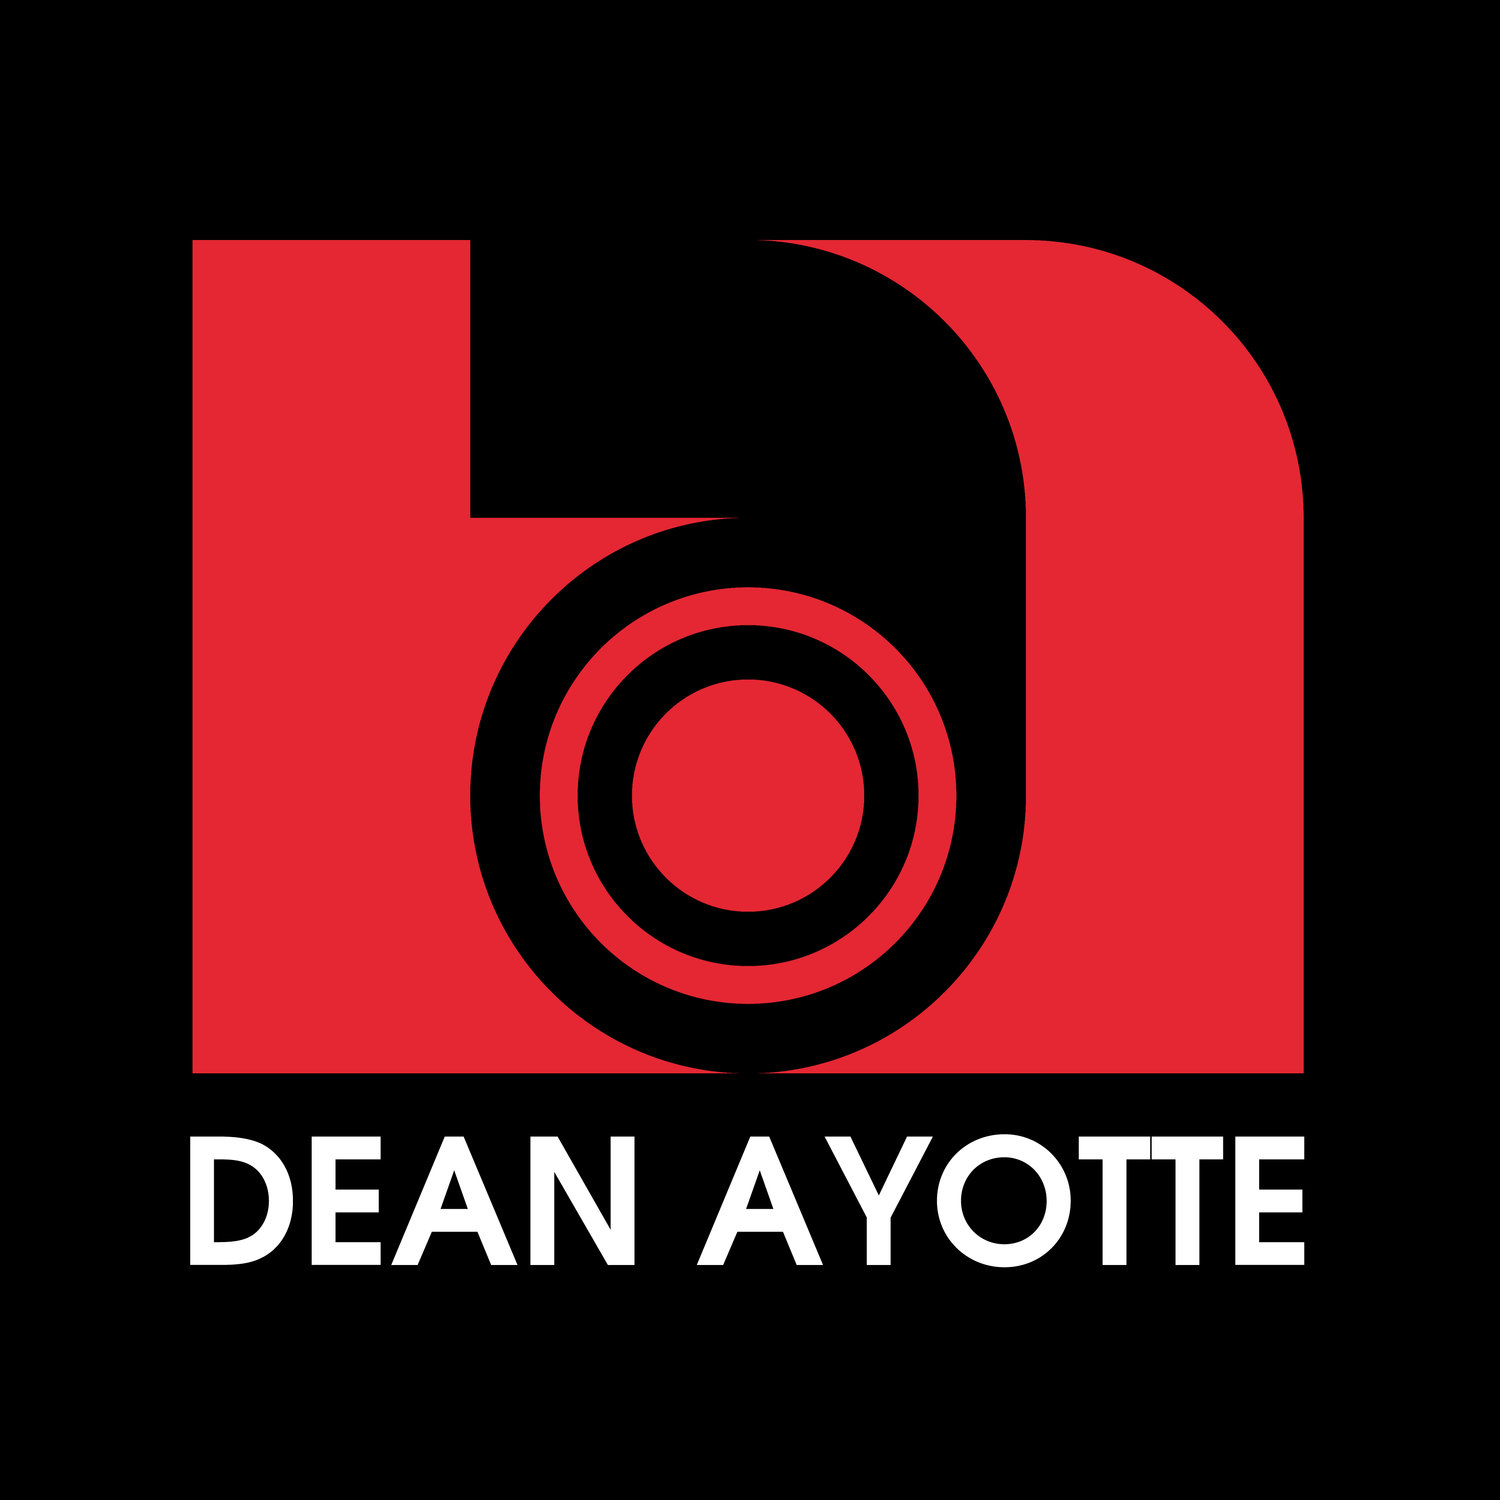 Dean Ayotte Writing and Photography